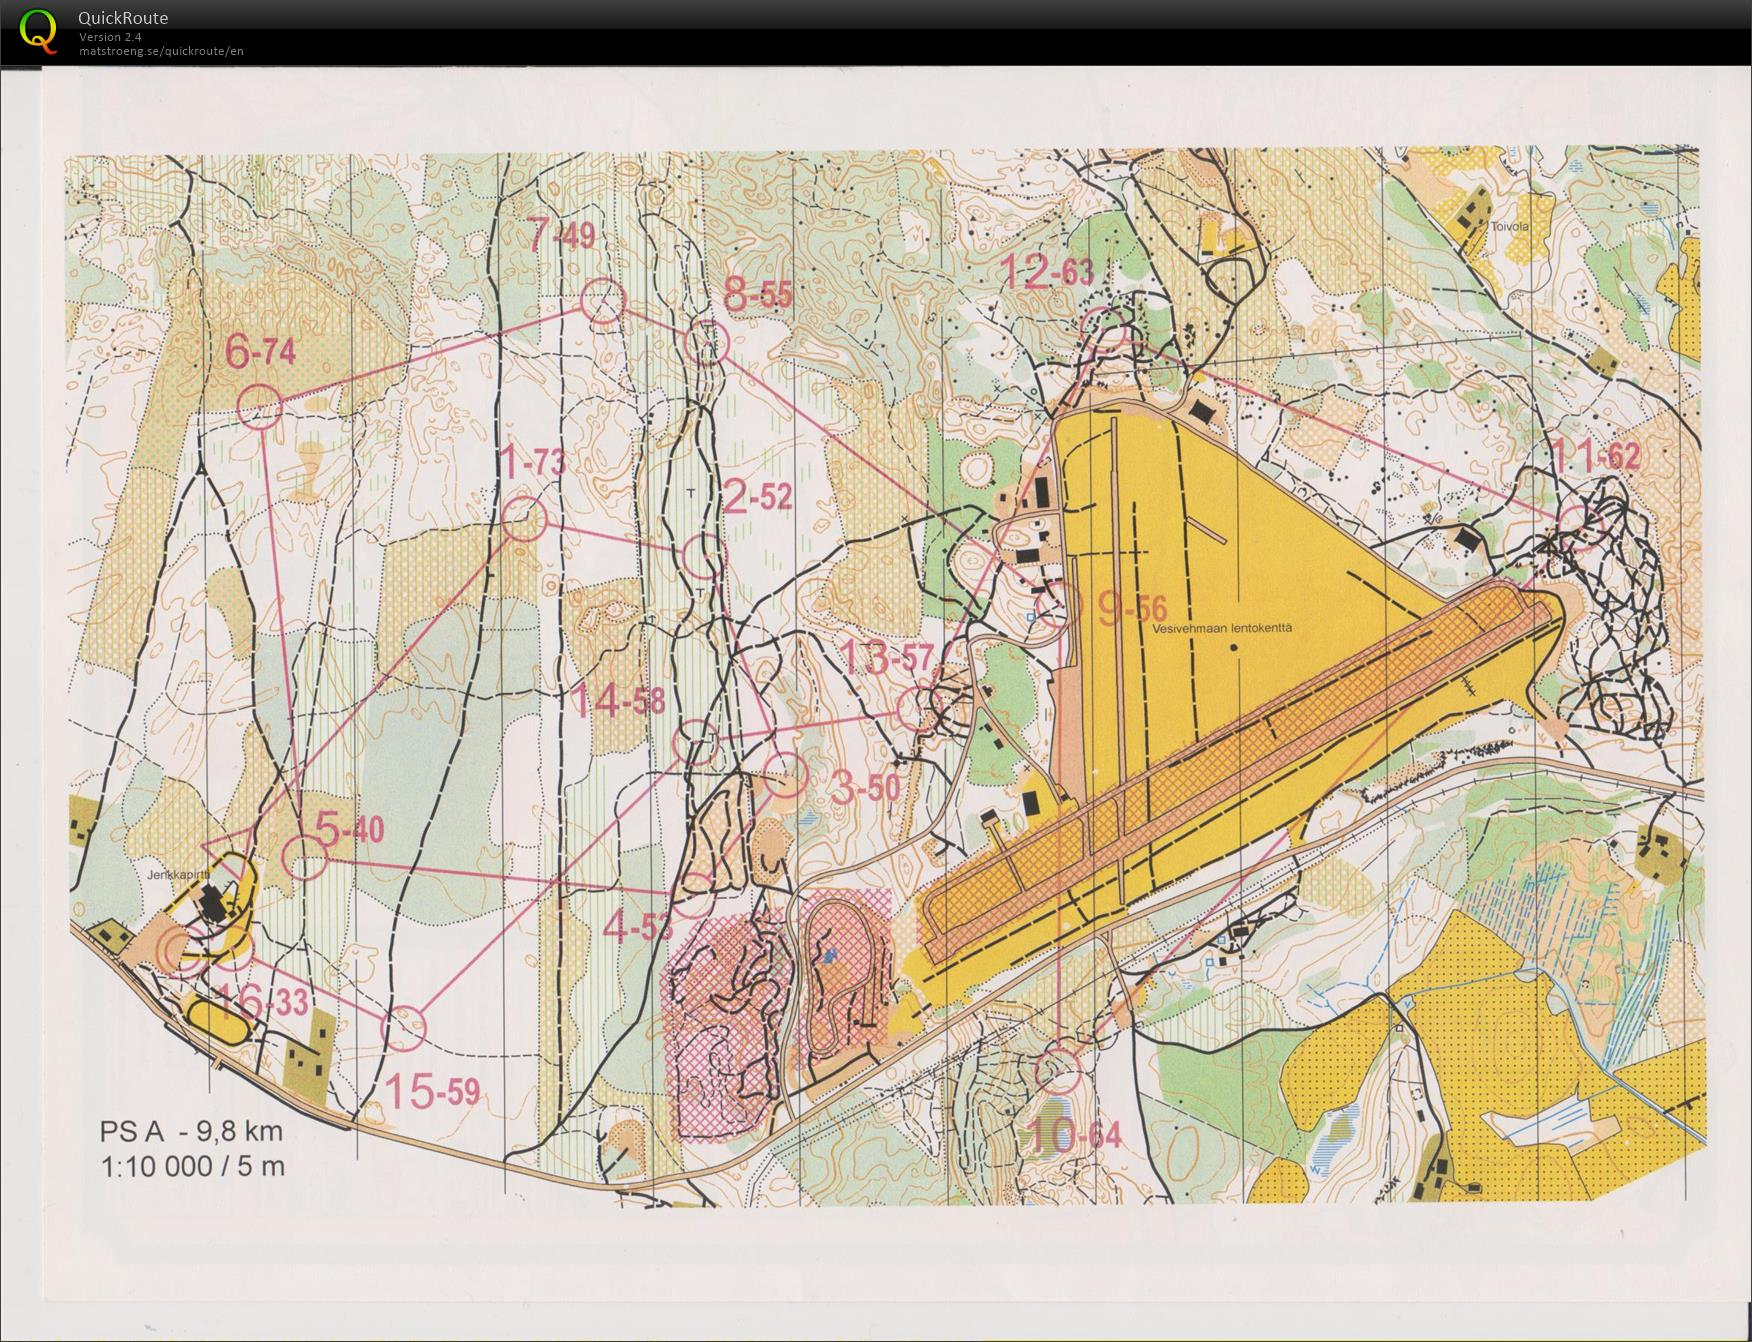 MiryCup 8. osakisa - August 7th 2019 - Orienteering Map from ... on us airways phoenix airport map, u.s. airline hub map, piedmont nc map, us airways charlotte map, us airways clt airport map, piedmont on us map, psa super 80 seat map,